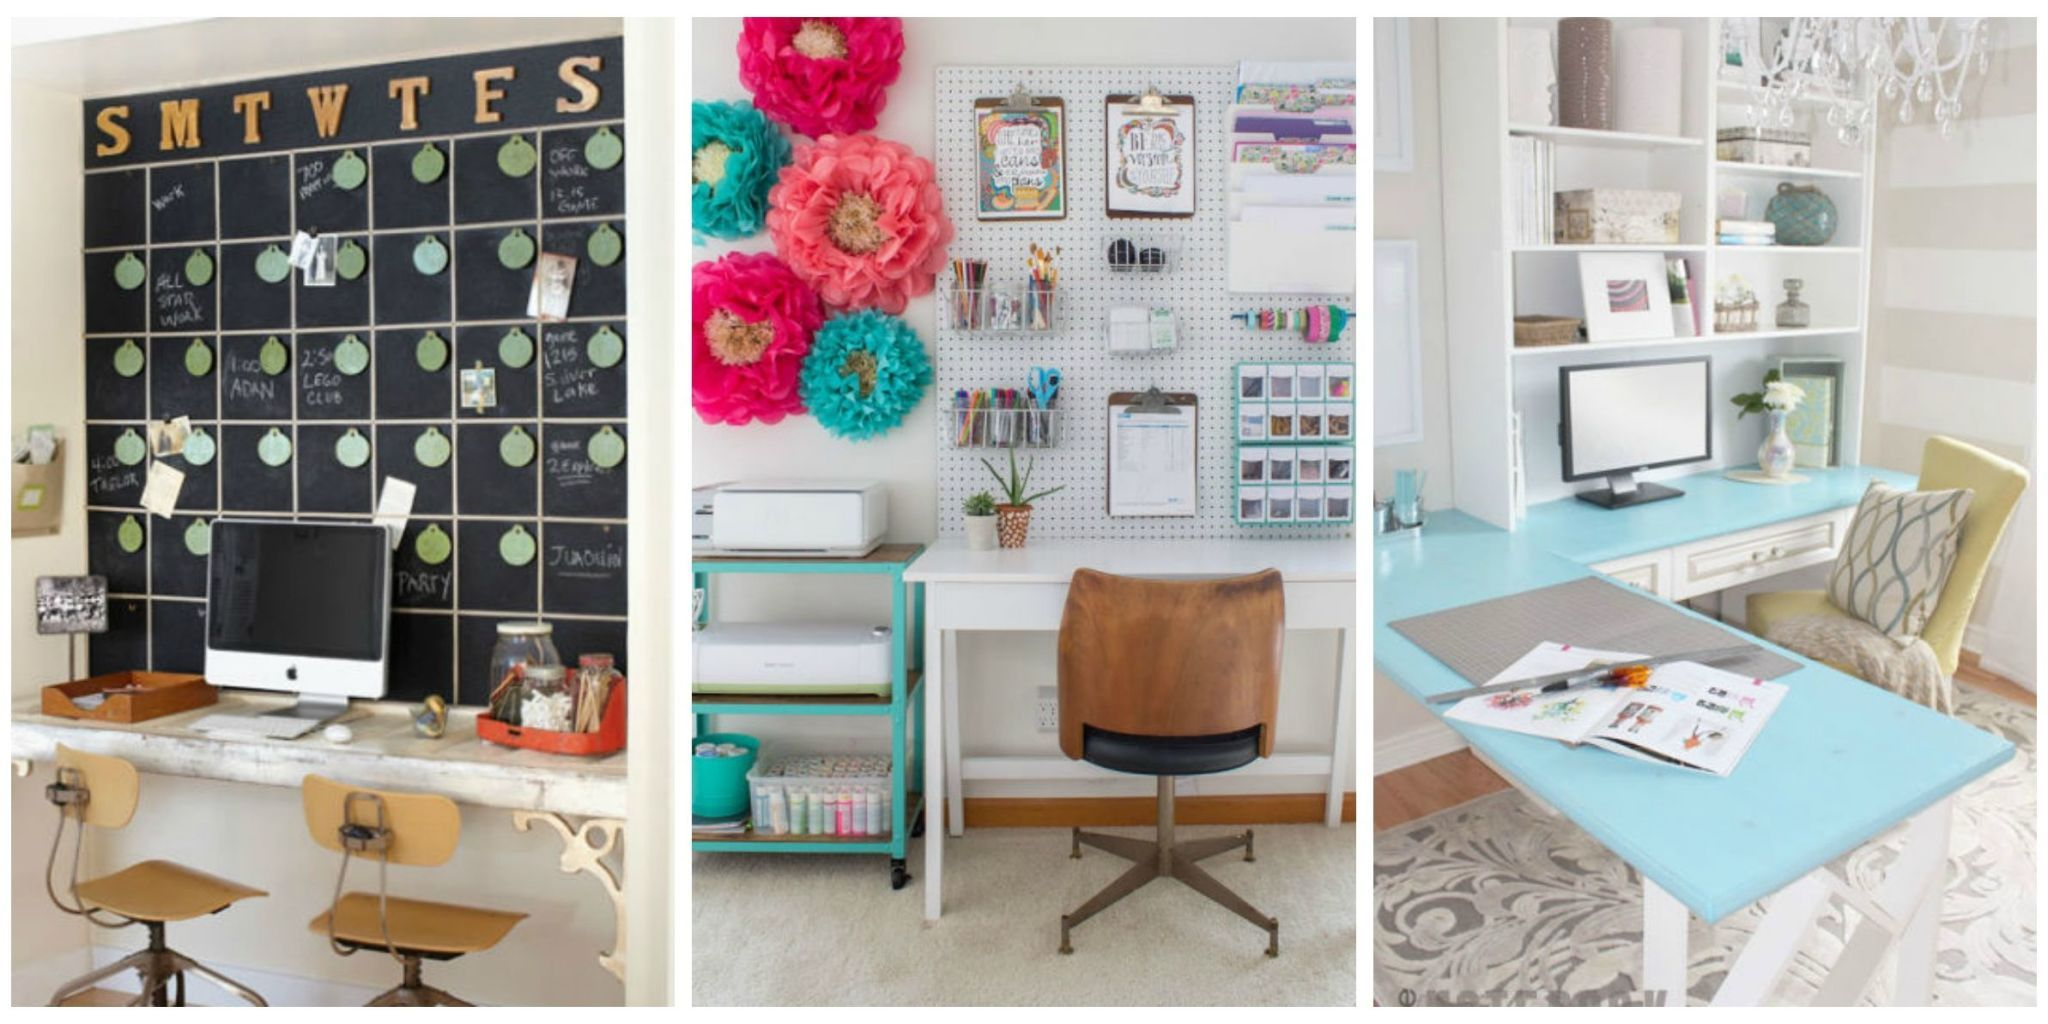 Beautiful 40 Of The Most Inspiring Home Office Spaces